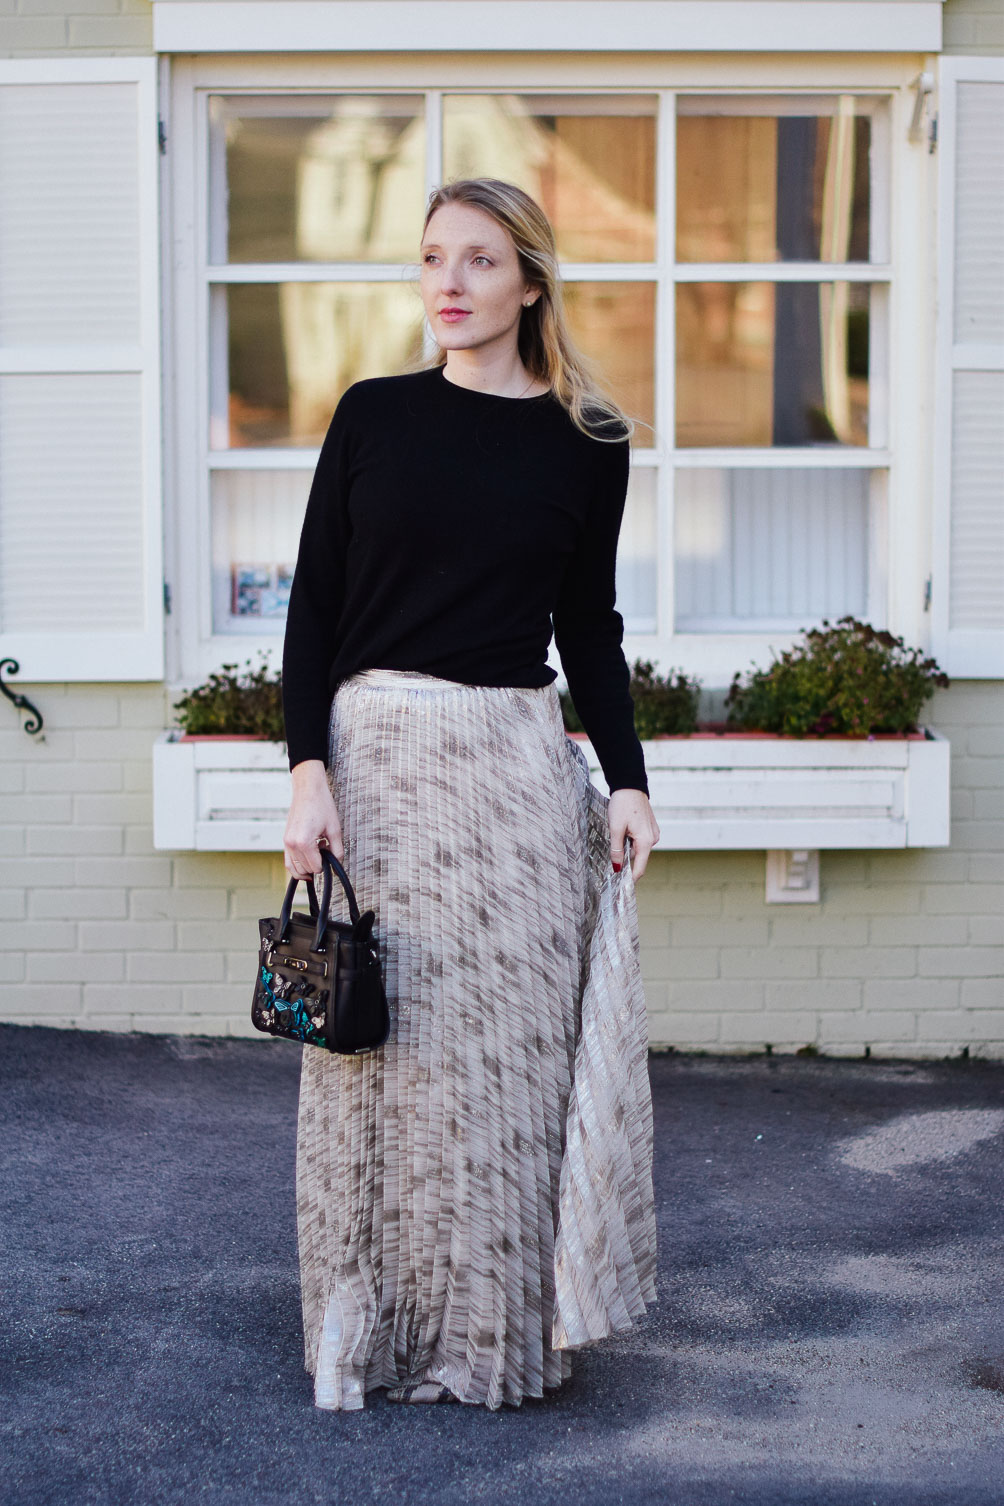 styling a metallic maxi skirt with snakeskin flats and cozy cashmere sweater